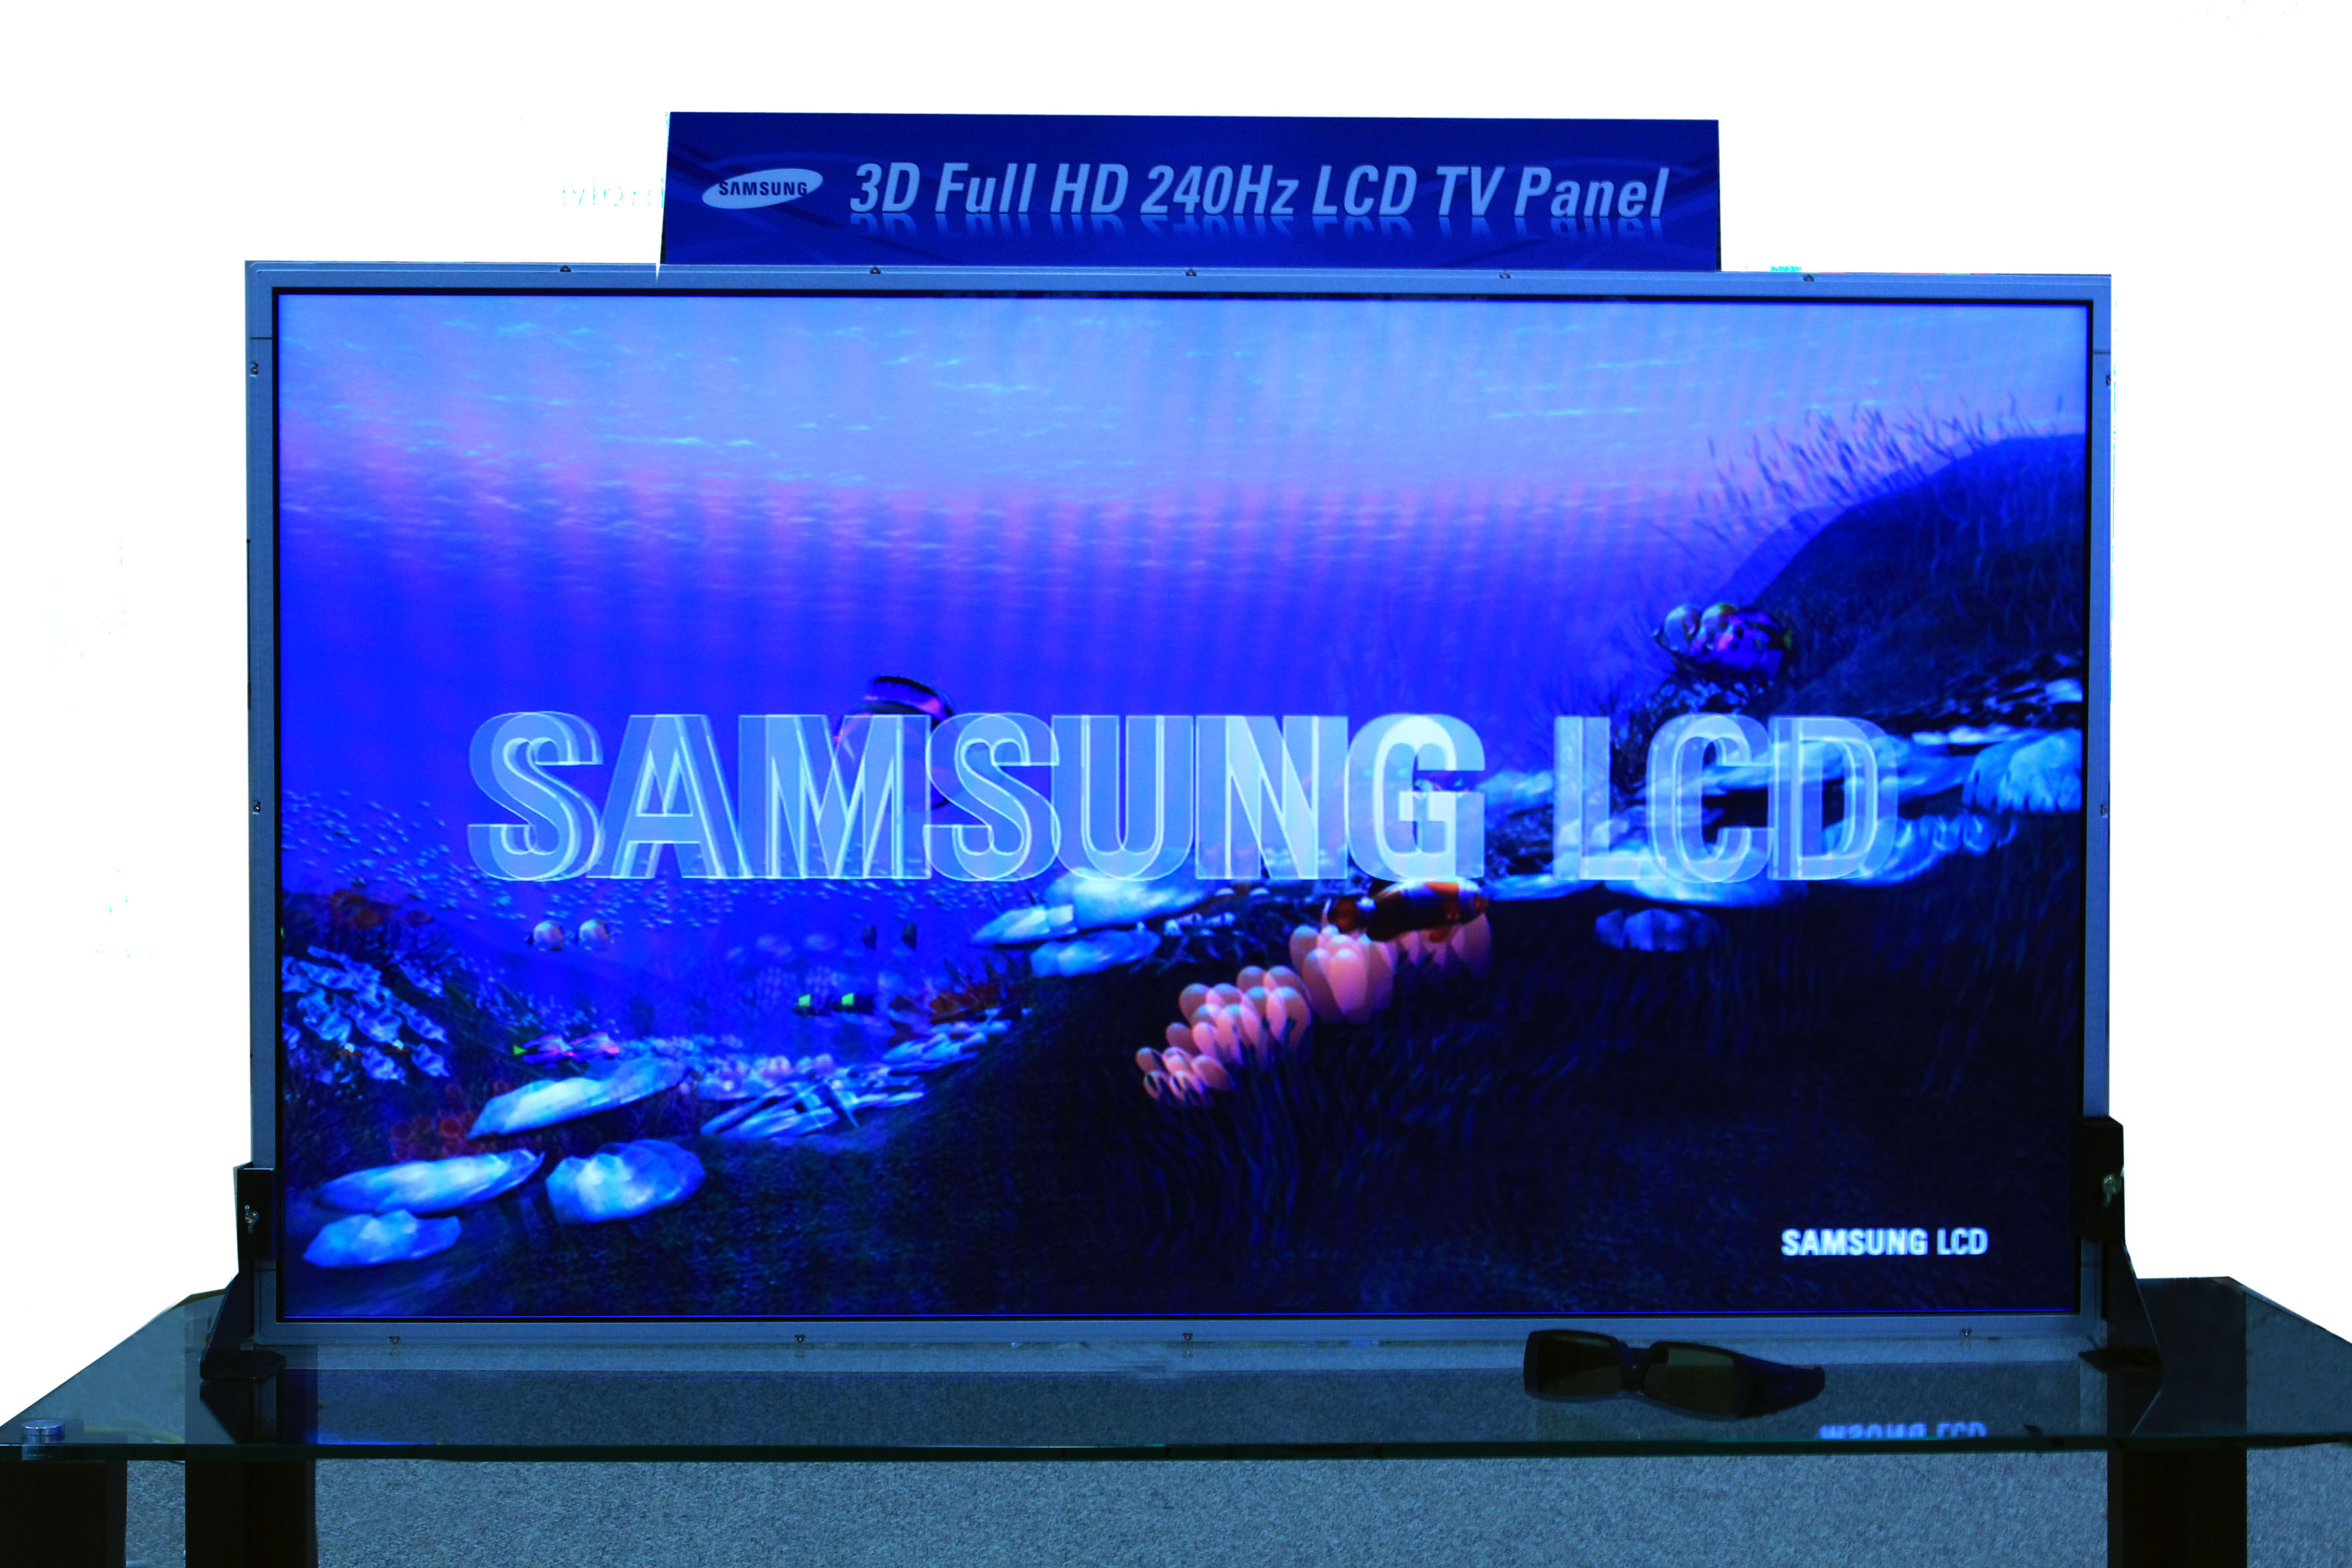 the samsung electronic company Find company research, competitor information, contact details & financial data for samsung electronics america, inc get the latest business insights from d&b hoovers.